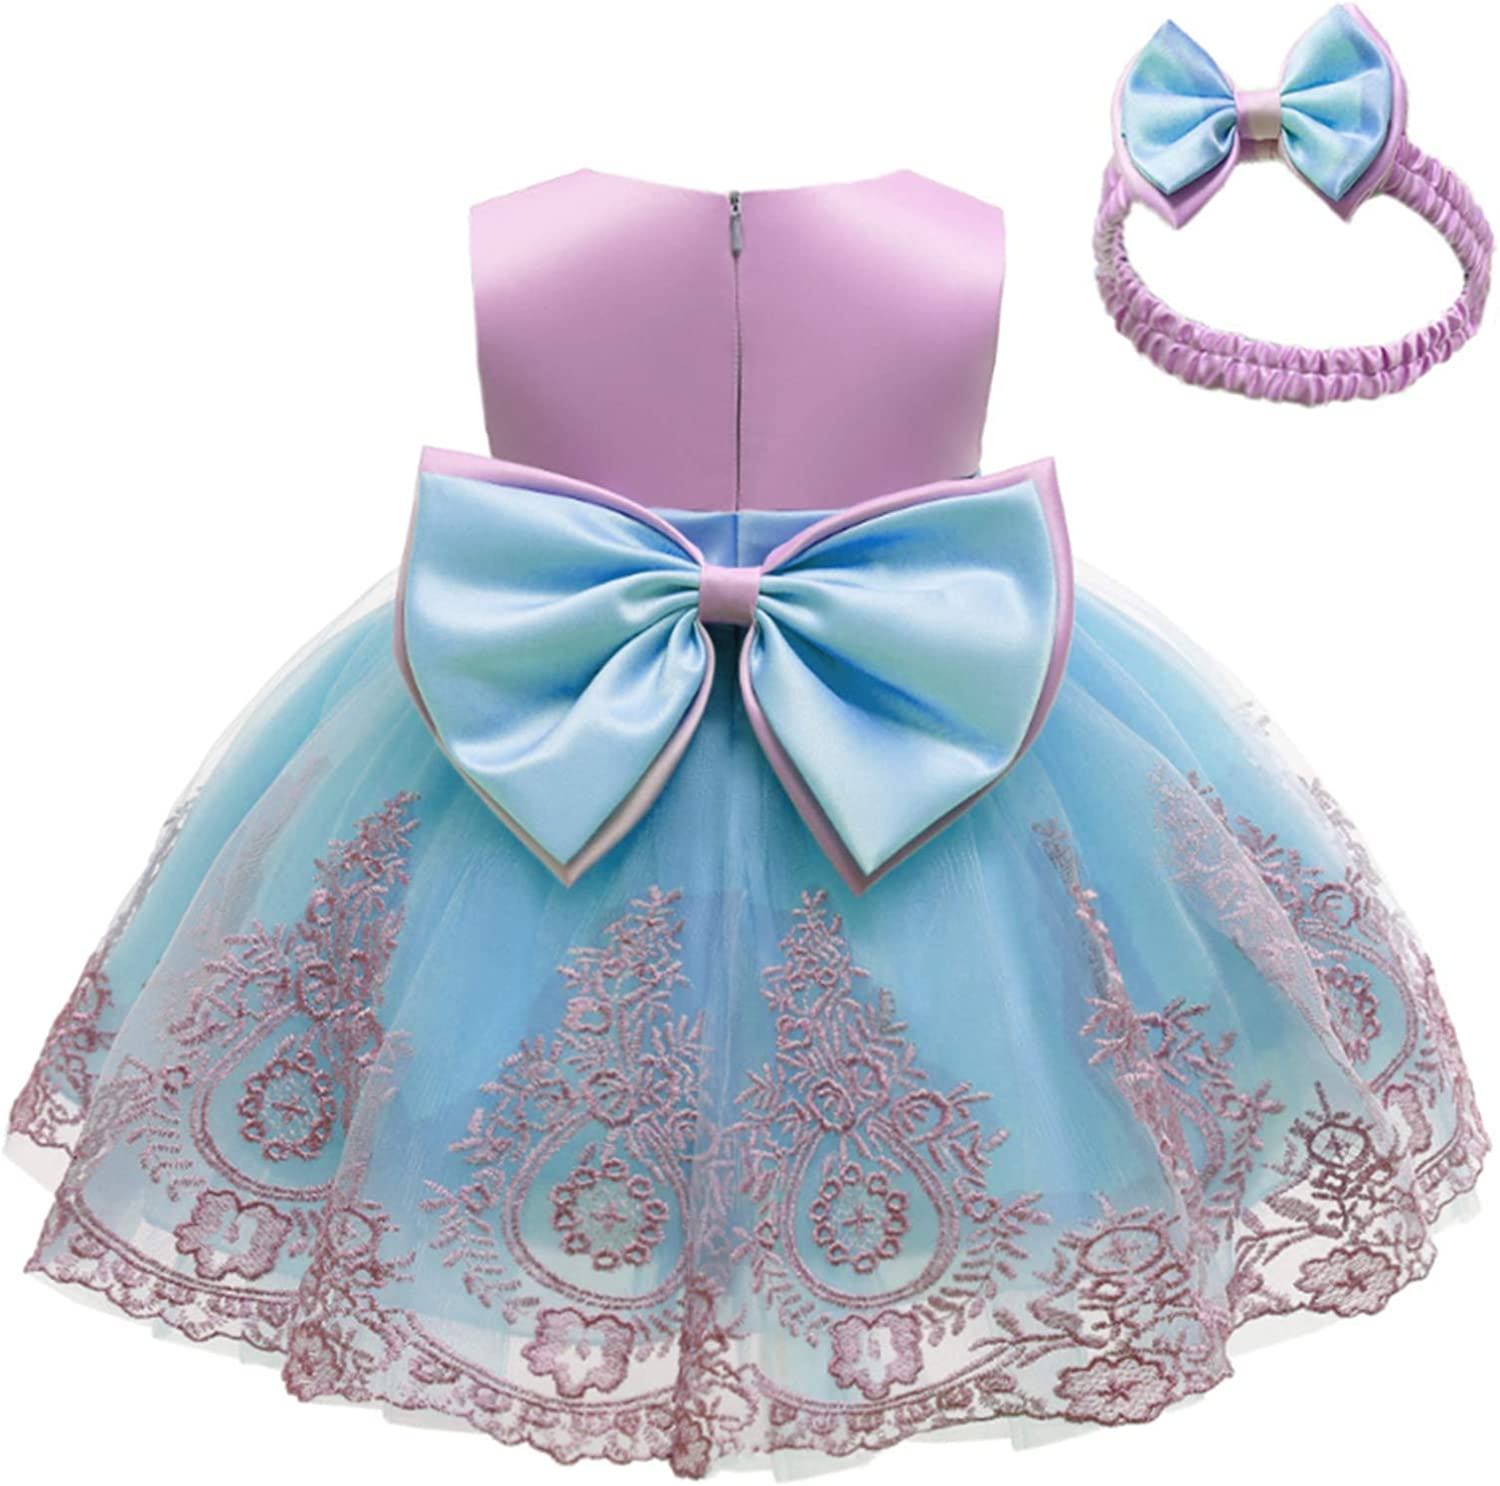 Mukola Baby Girls Pageant Popular products Lace Party Embroidery Dresses quality assurance Toddler